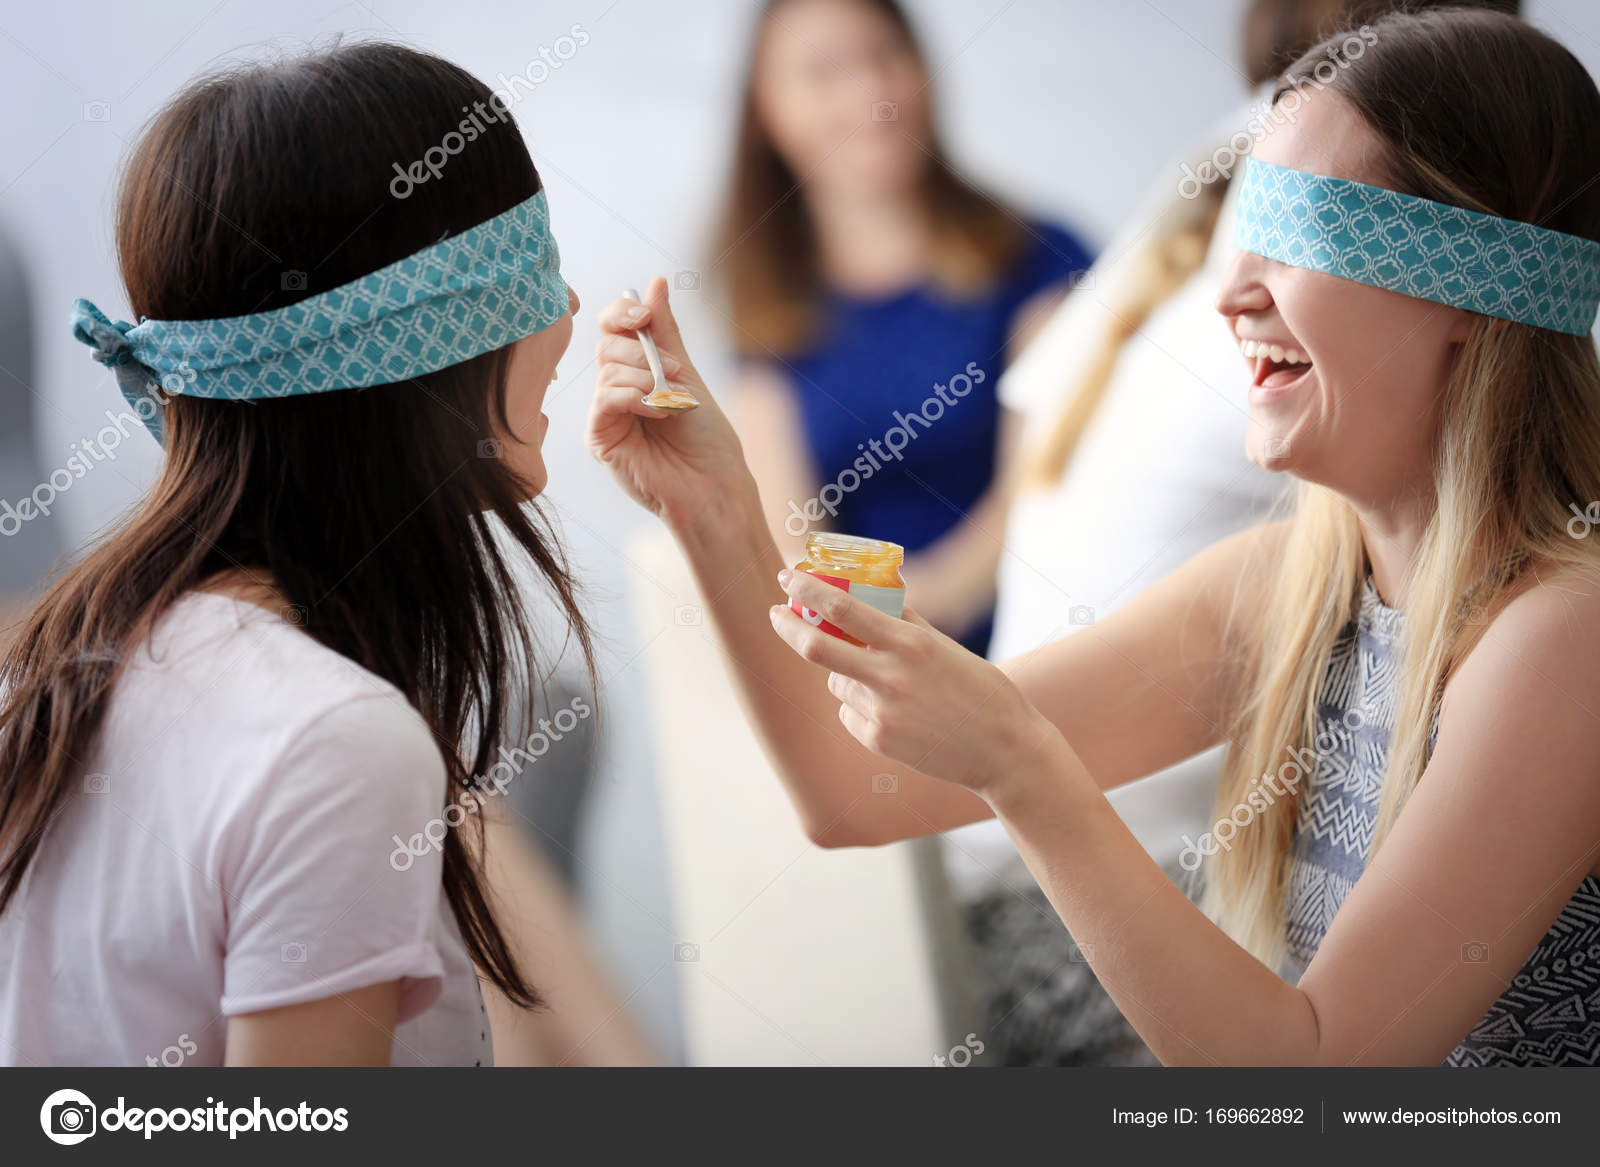 Women Taking Part In Game At Baby Shower Party Stock Photo